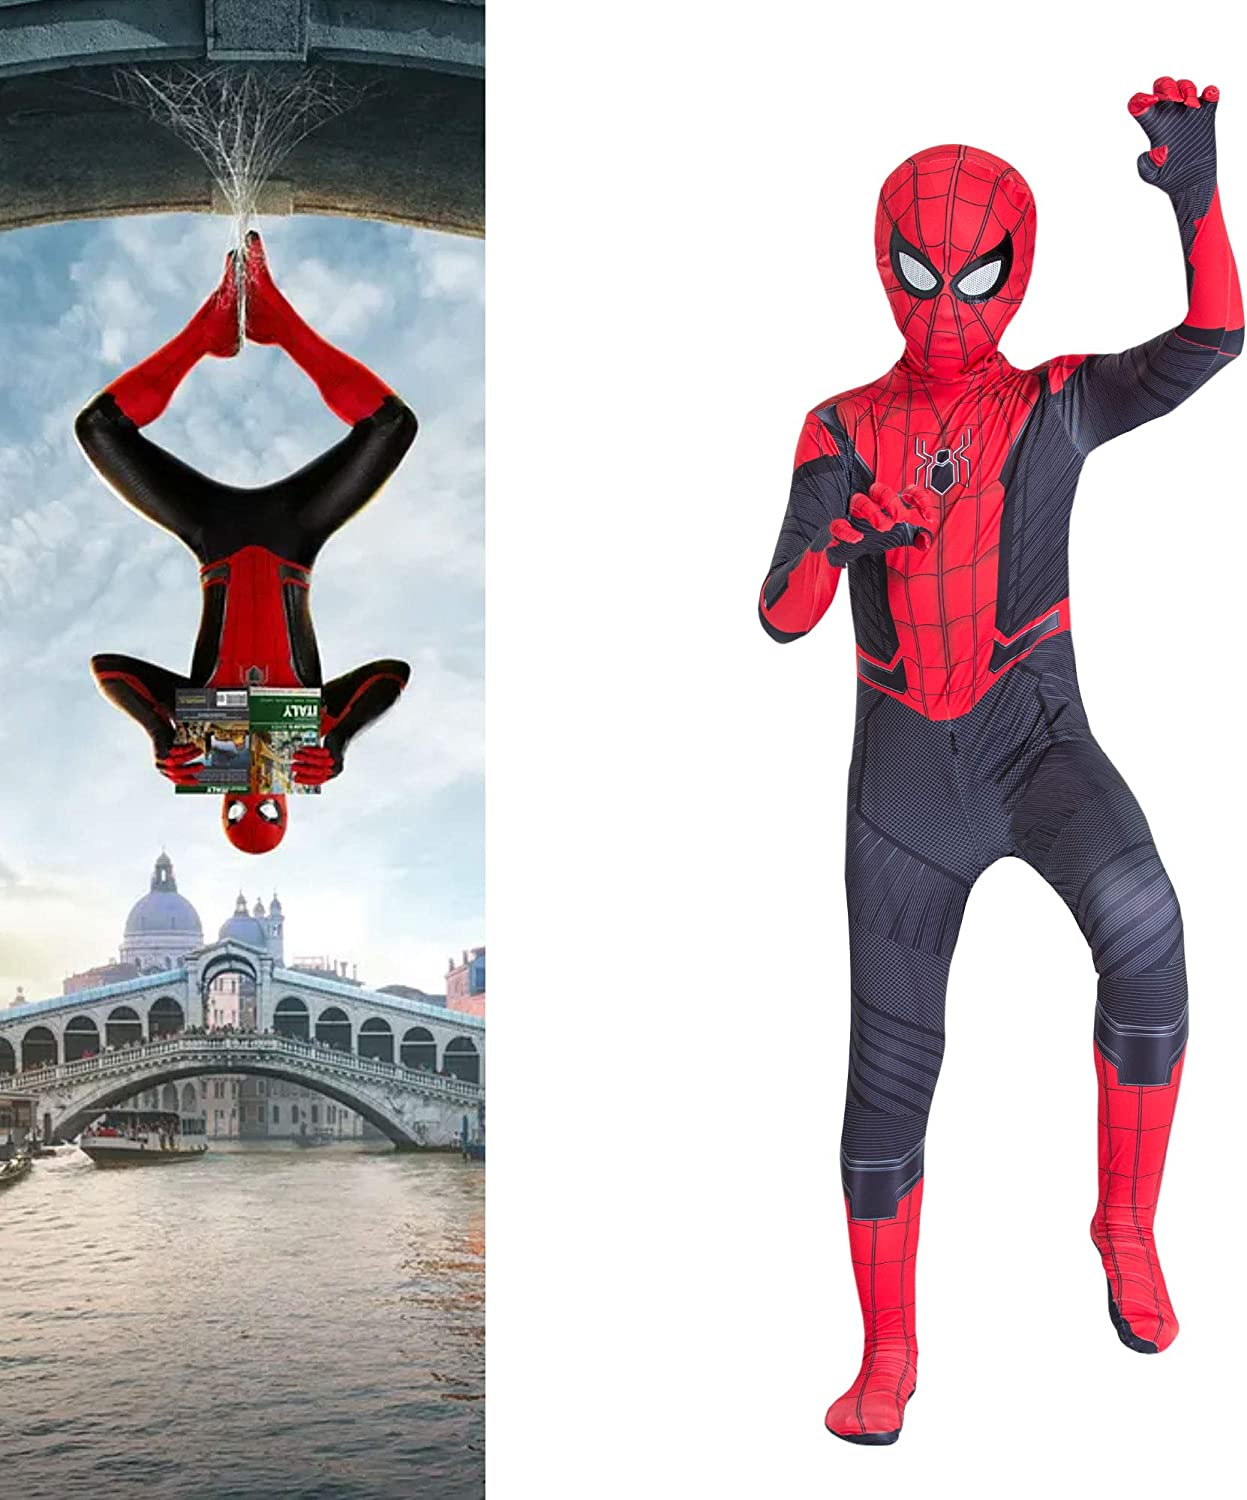 YME Superhero Spider-Man:Miles Morales Costume for Kids,Spiderman:Far from Home Cosplay Costumes for Boys